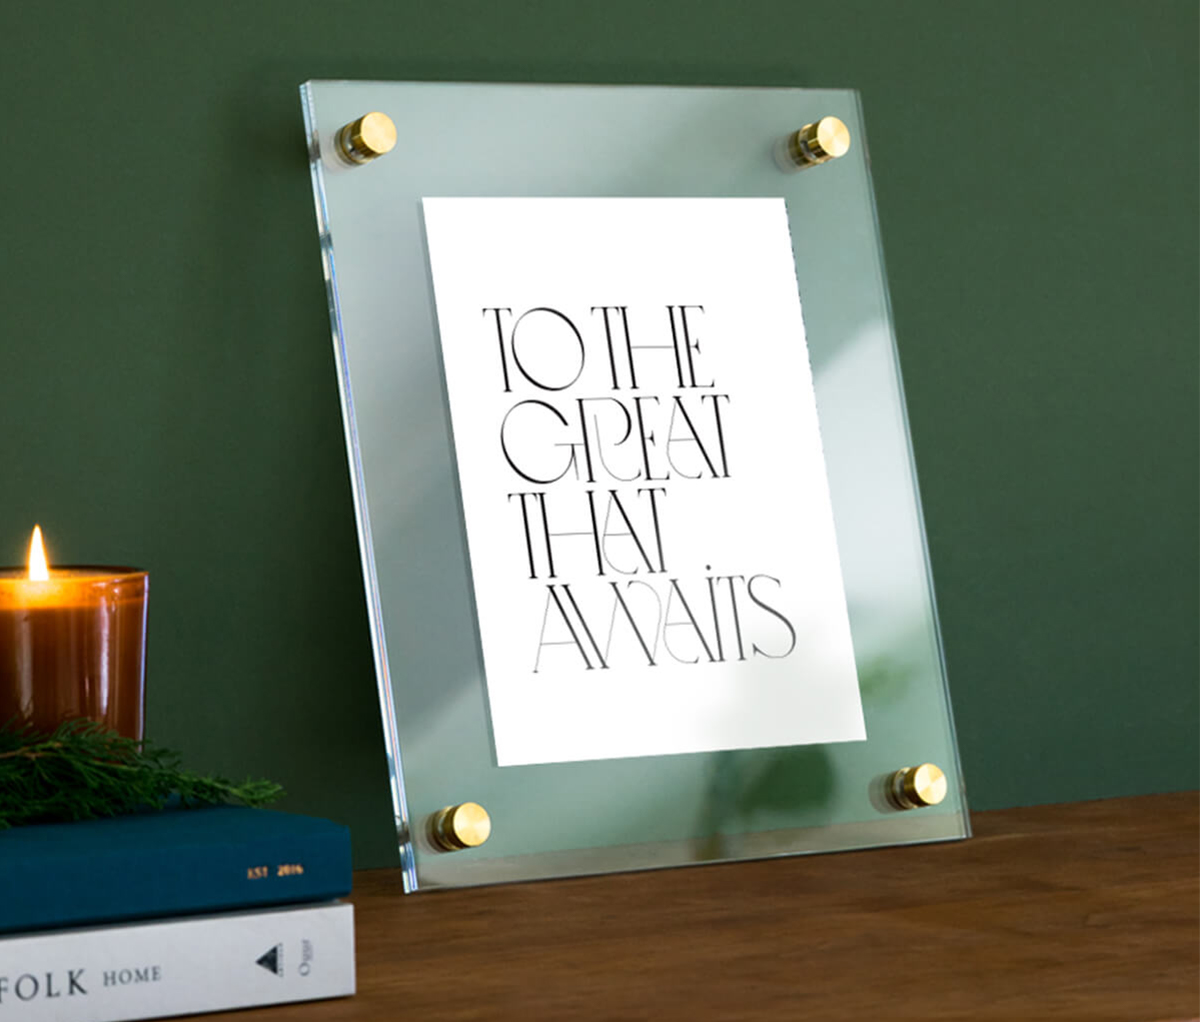 Uprising Floating Frame featuring the phrase to the great that awaits